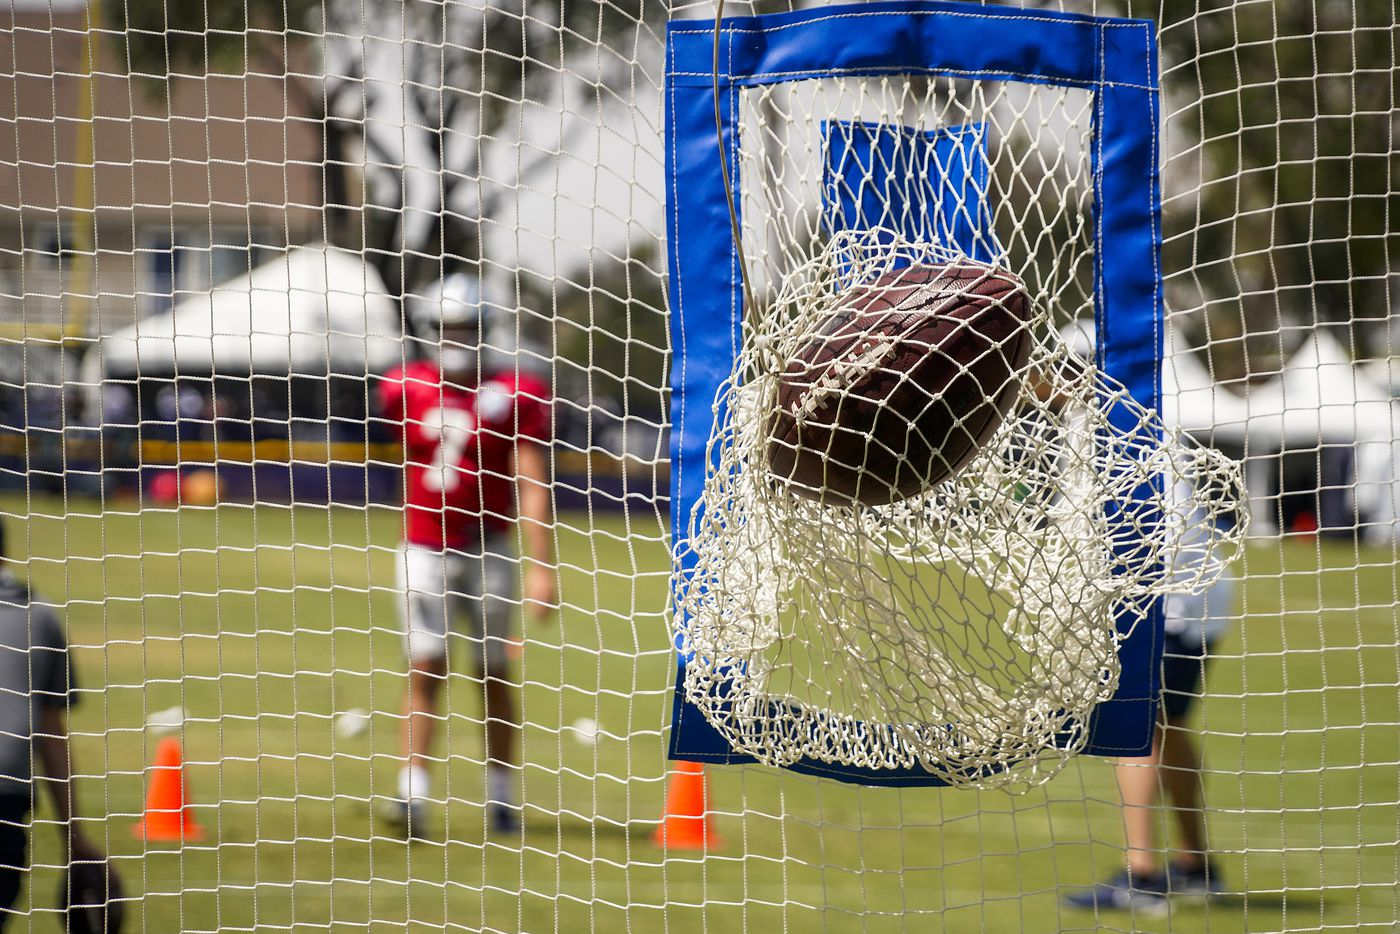 A pass by Dallas Cowboys quarterback Ben DiNucci (7) rips a target net during a practice at training camp on Wednesday, July 28, 2021, in Oxnard, Calif.